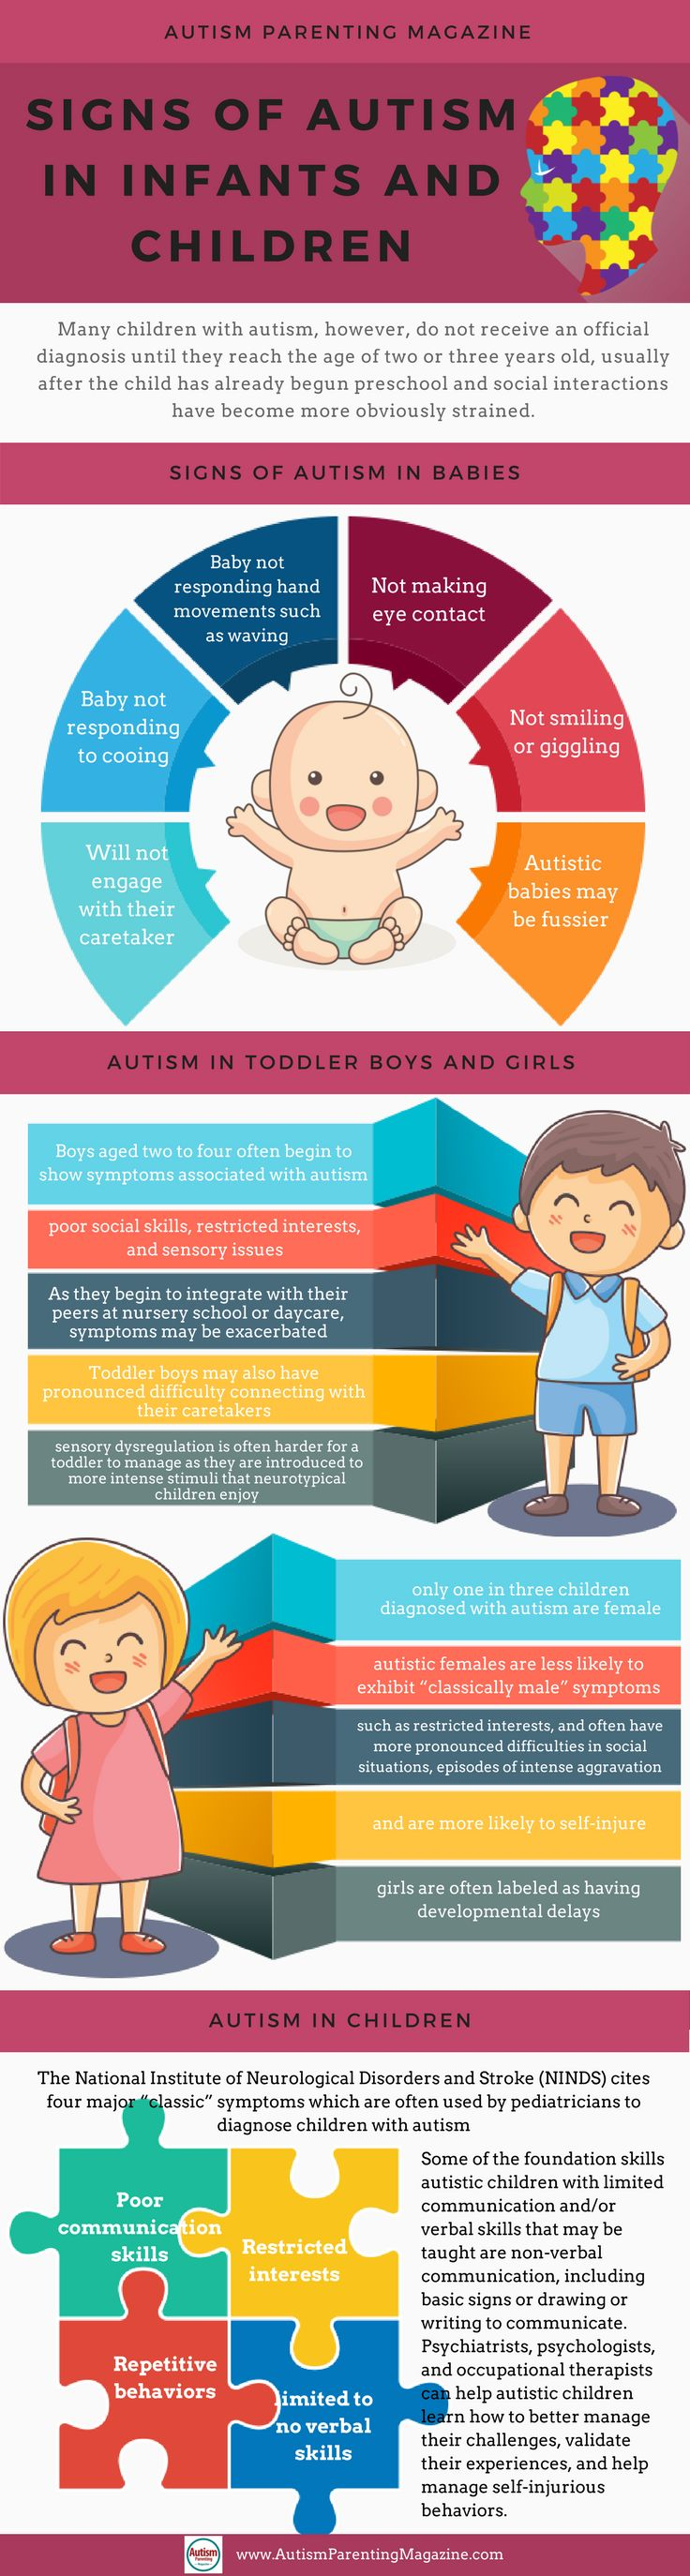 Best 25 Autism in toddlers ideas on Pinterest